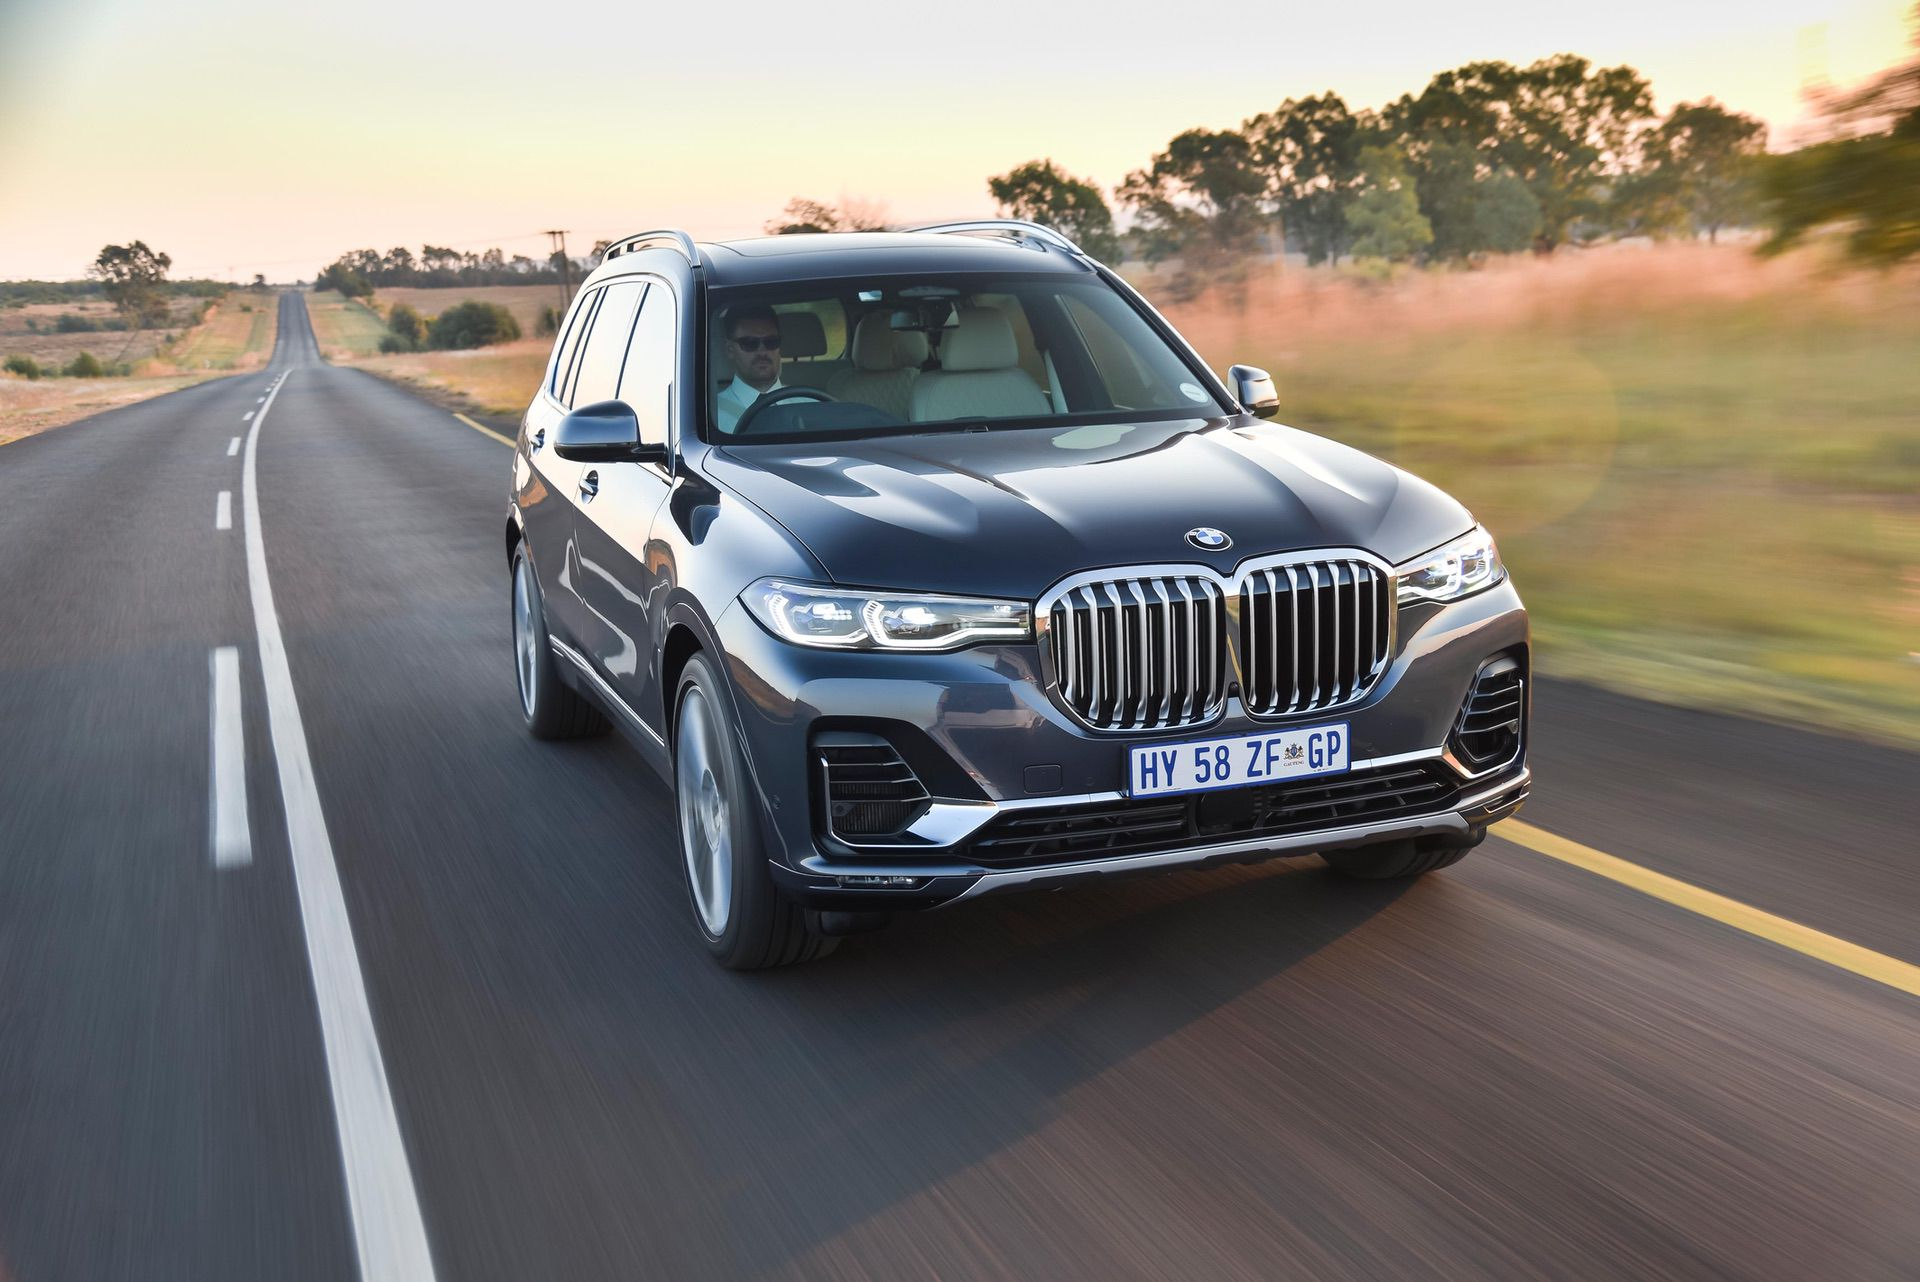 Clti Mzv 7797 New Bmw 7 Series Revealed With 40 Larger Grille